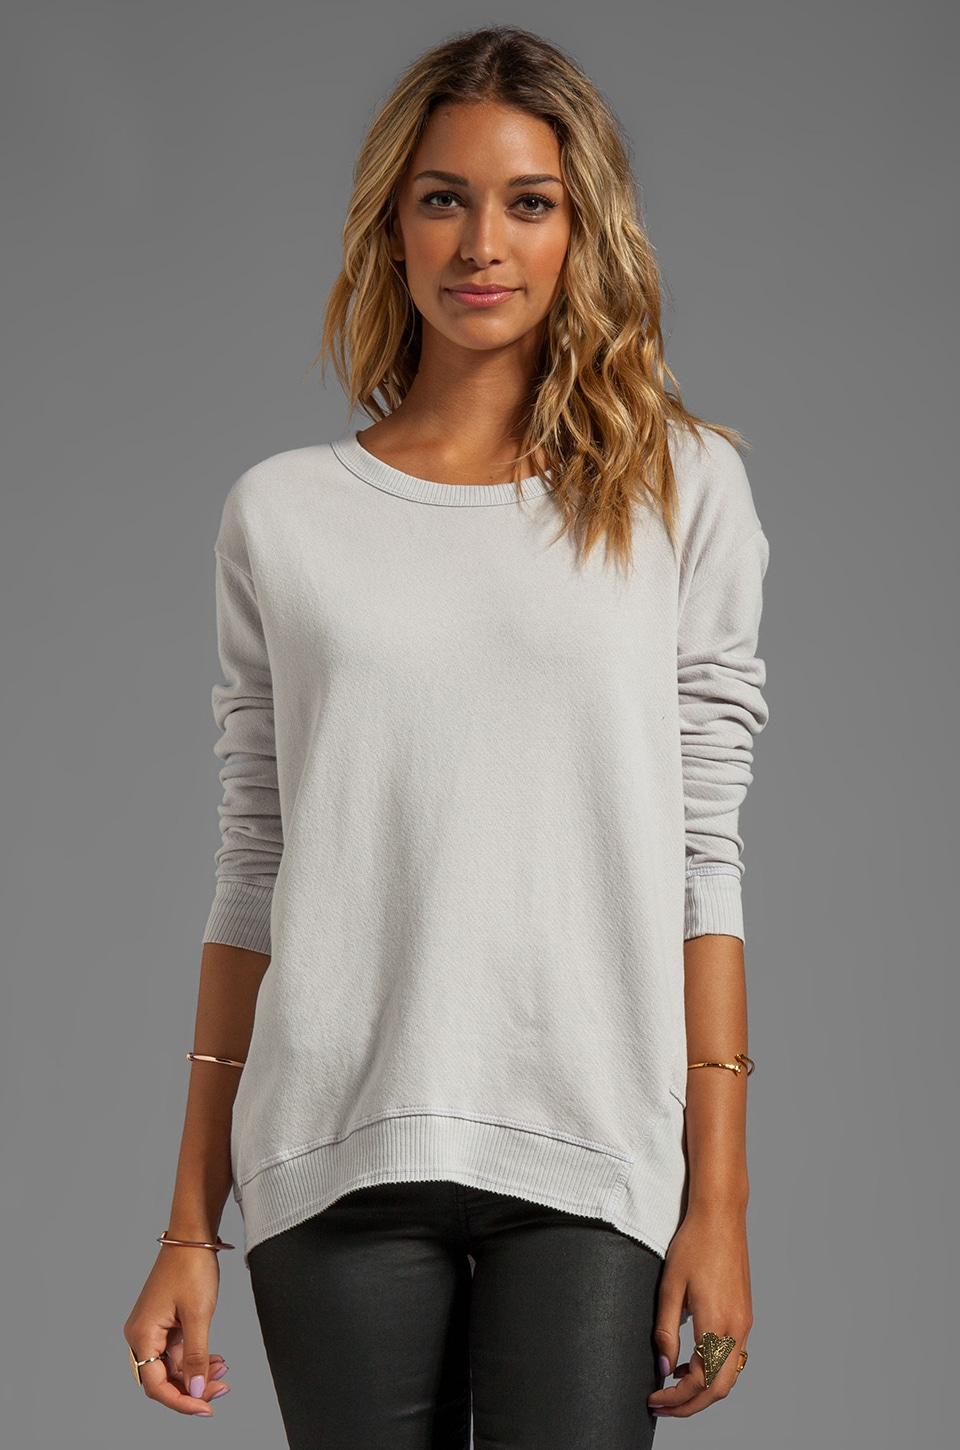 Wilt Vintage French Terry Back Slant Sweatshirt in Dove